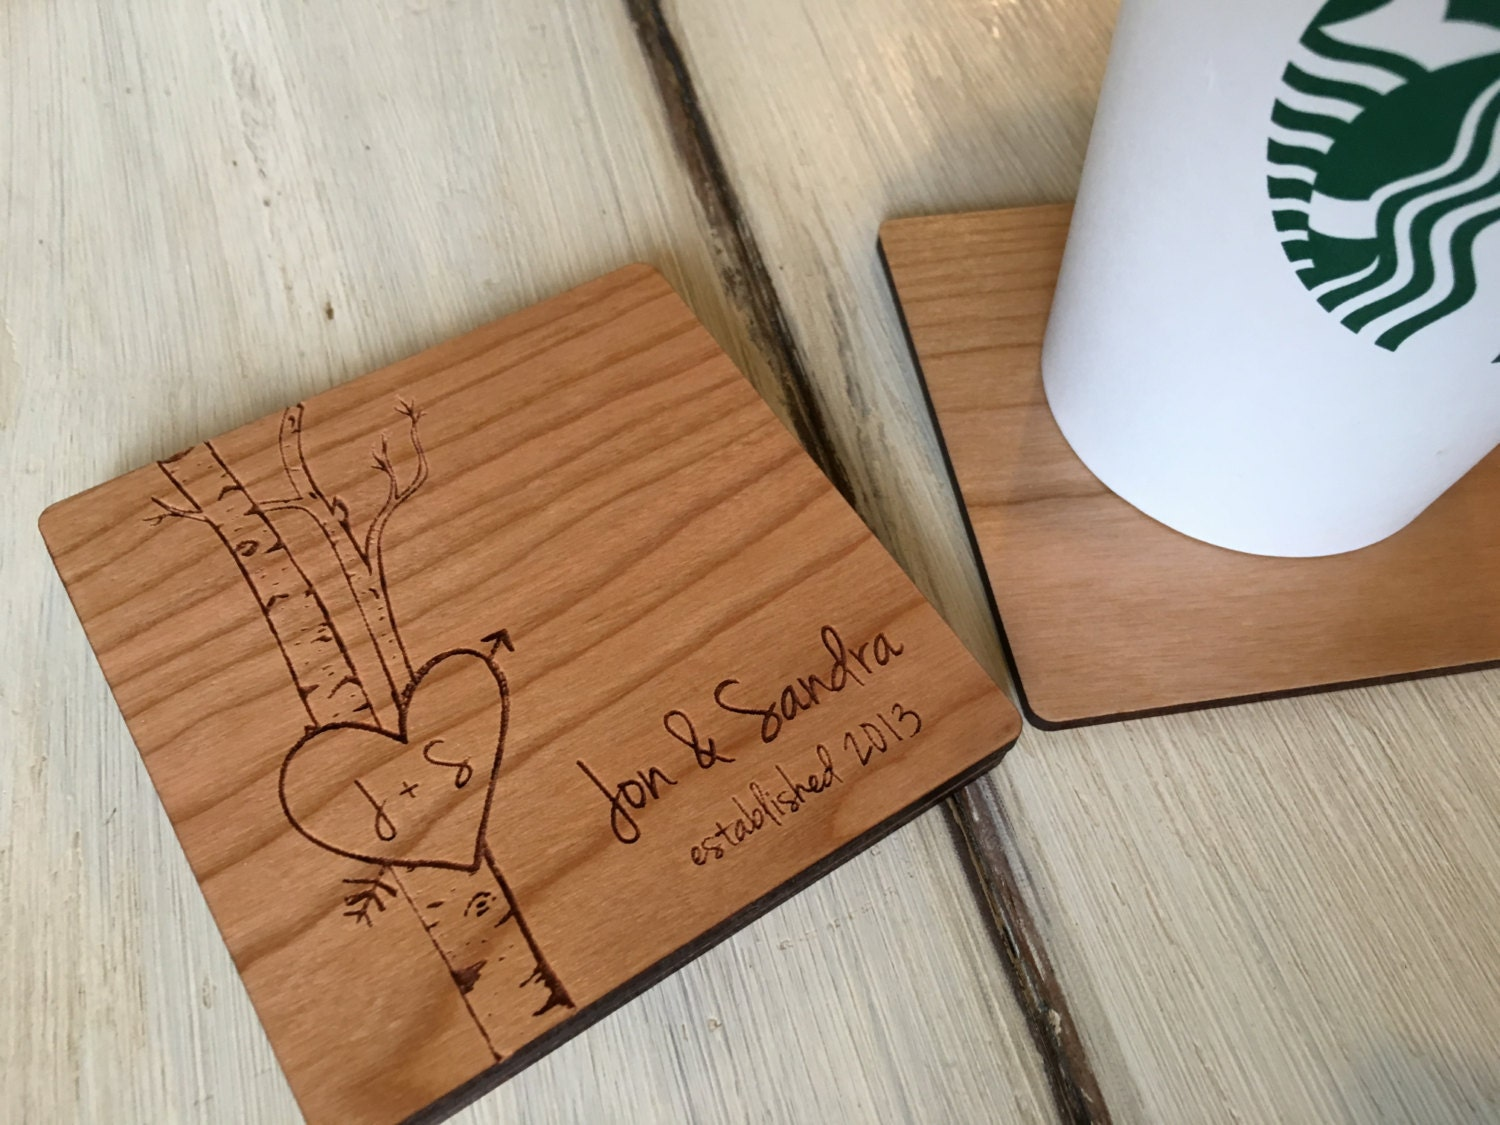 Unique Wedding Gifts For Older Couples: Custom Coasters Wedding Gifts For Couple Christmas Gift